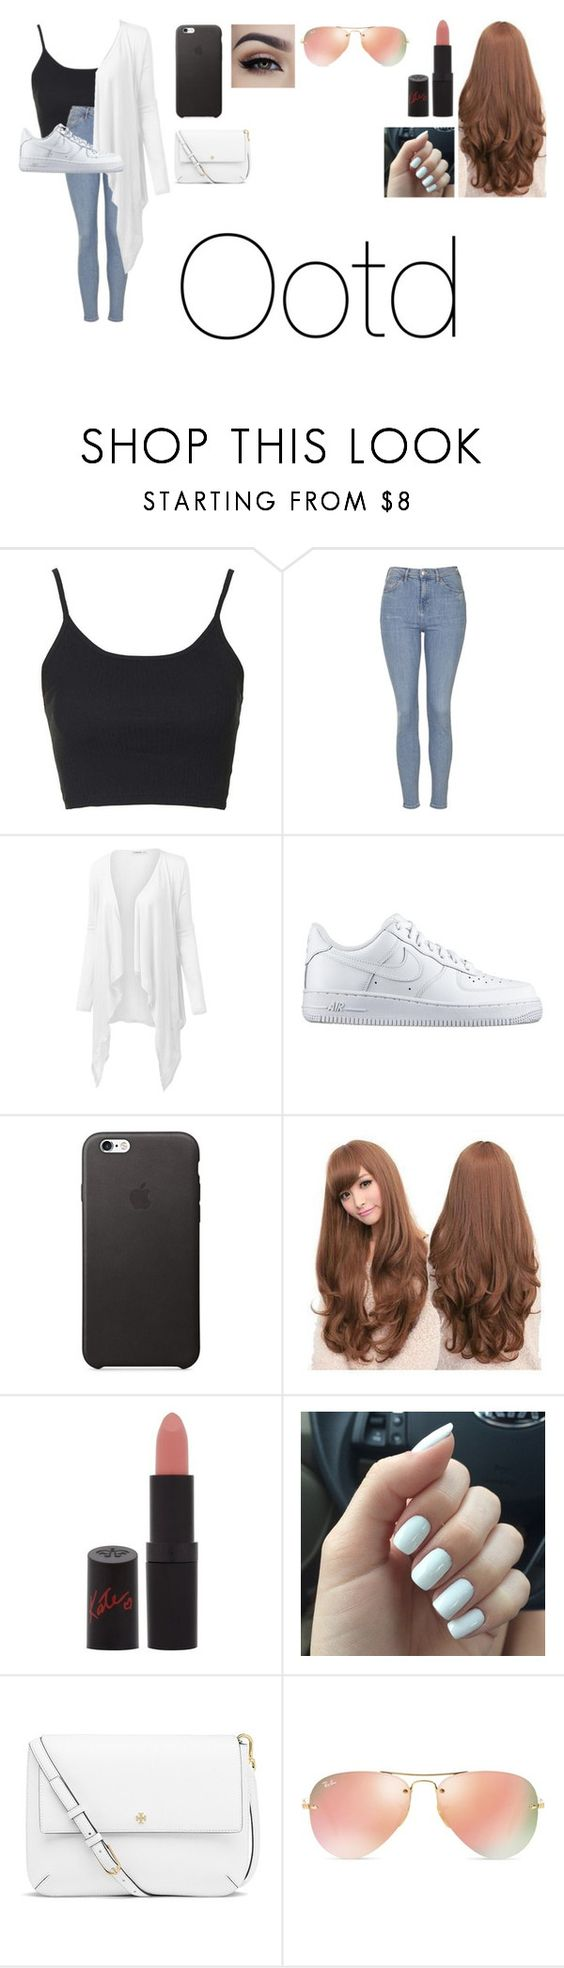 """Untitled #1339"" by phaniehoran ❤ liked on Polyvore featuring Topshop, J.TOMSON, NIKE, Sankins, Rimmel, Tory Burch, Ray-Ban, women's clothing, women and female"